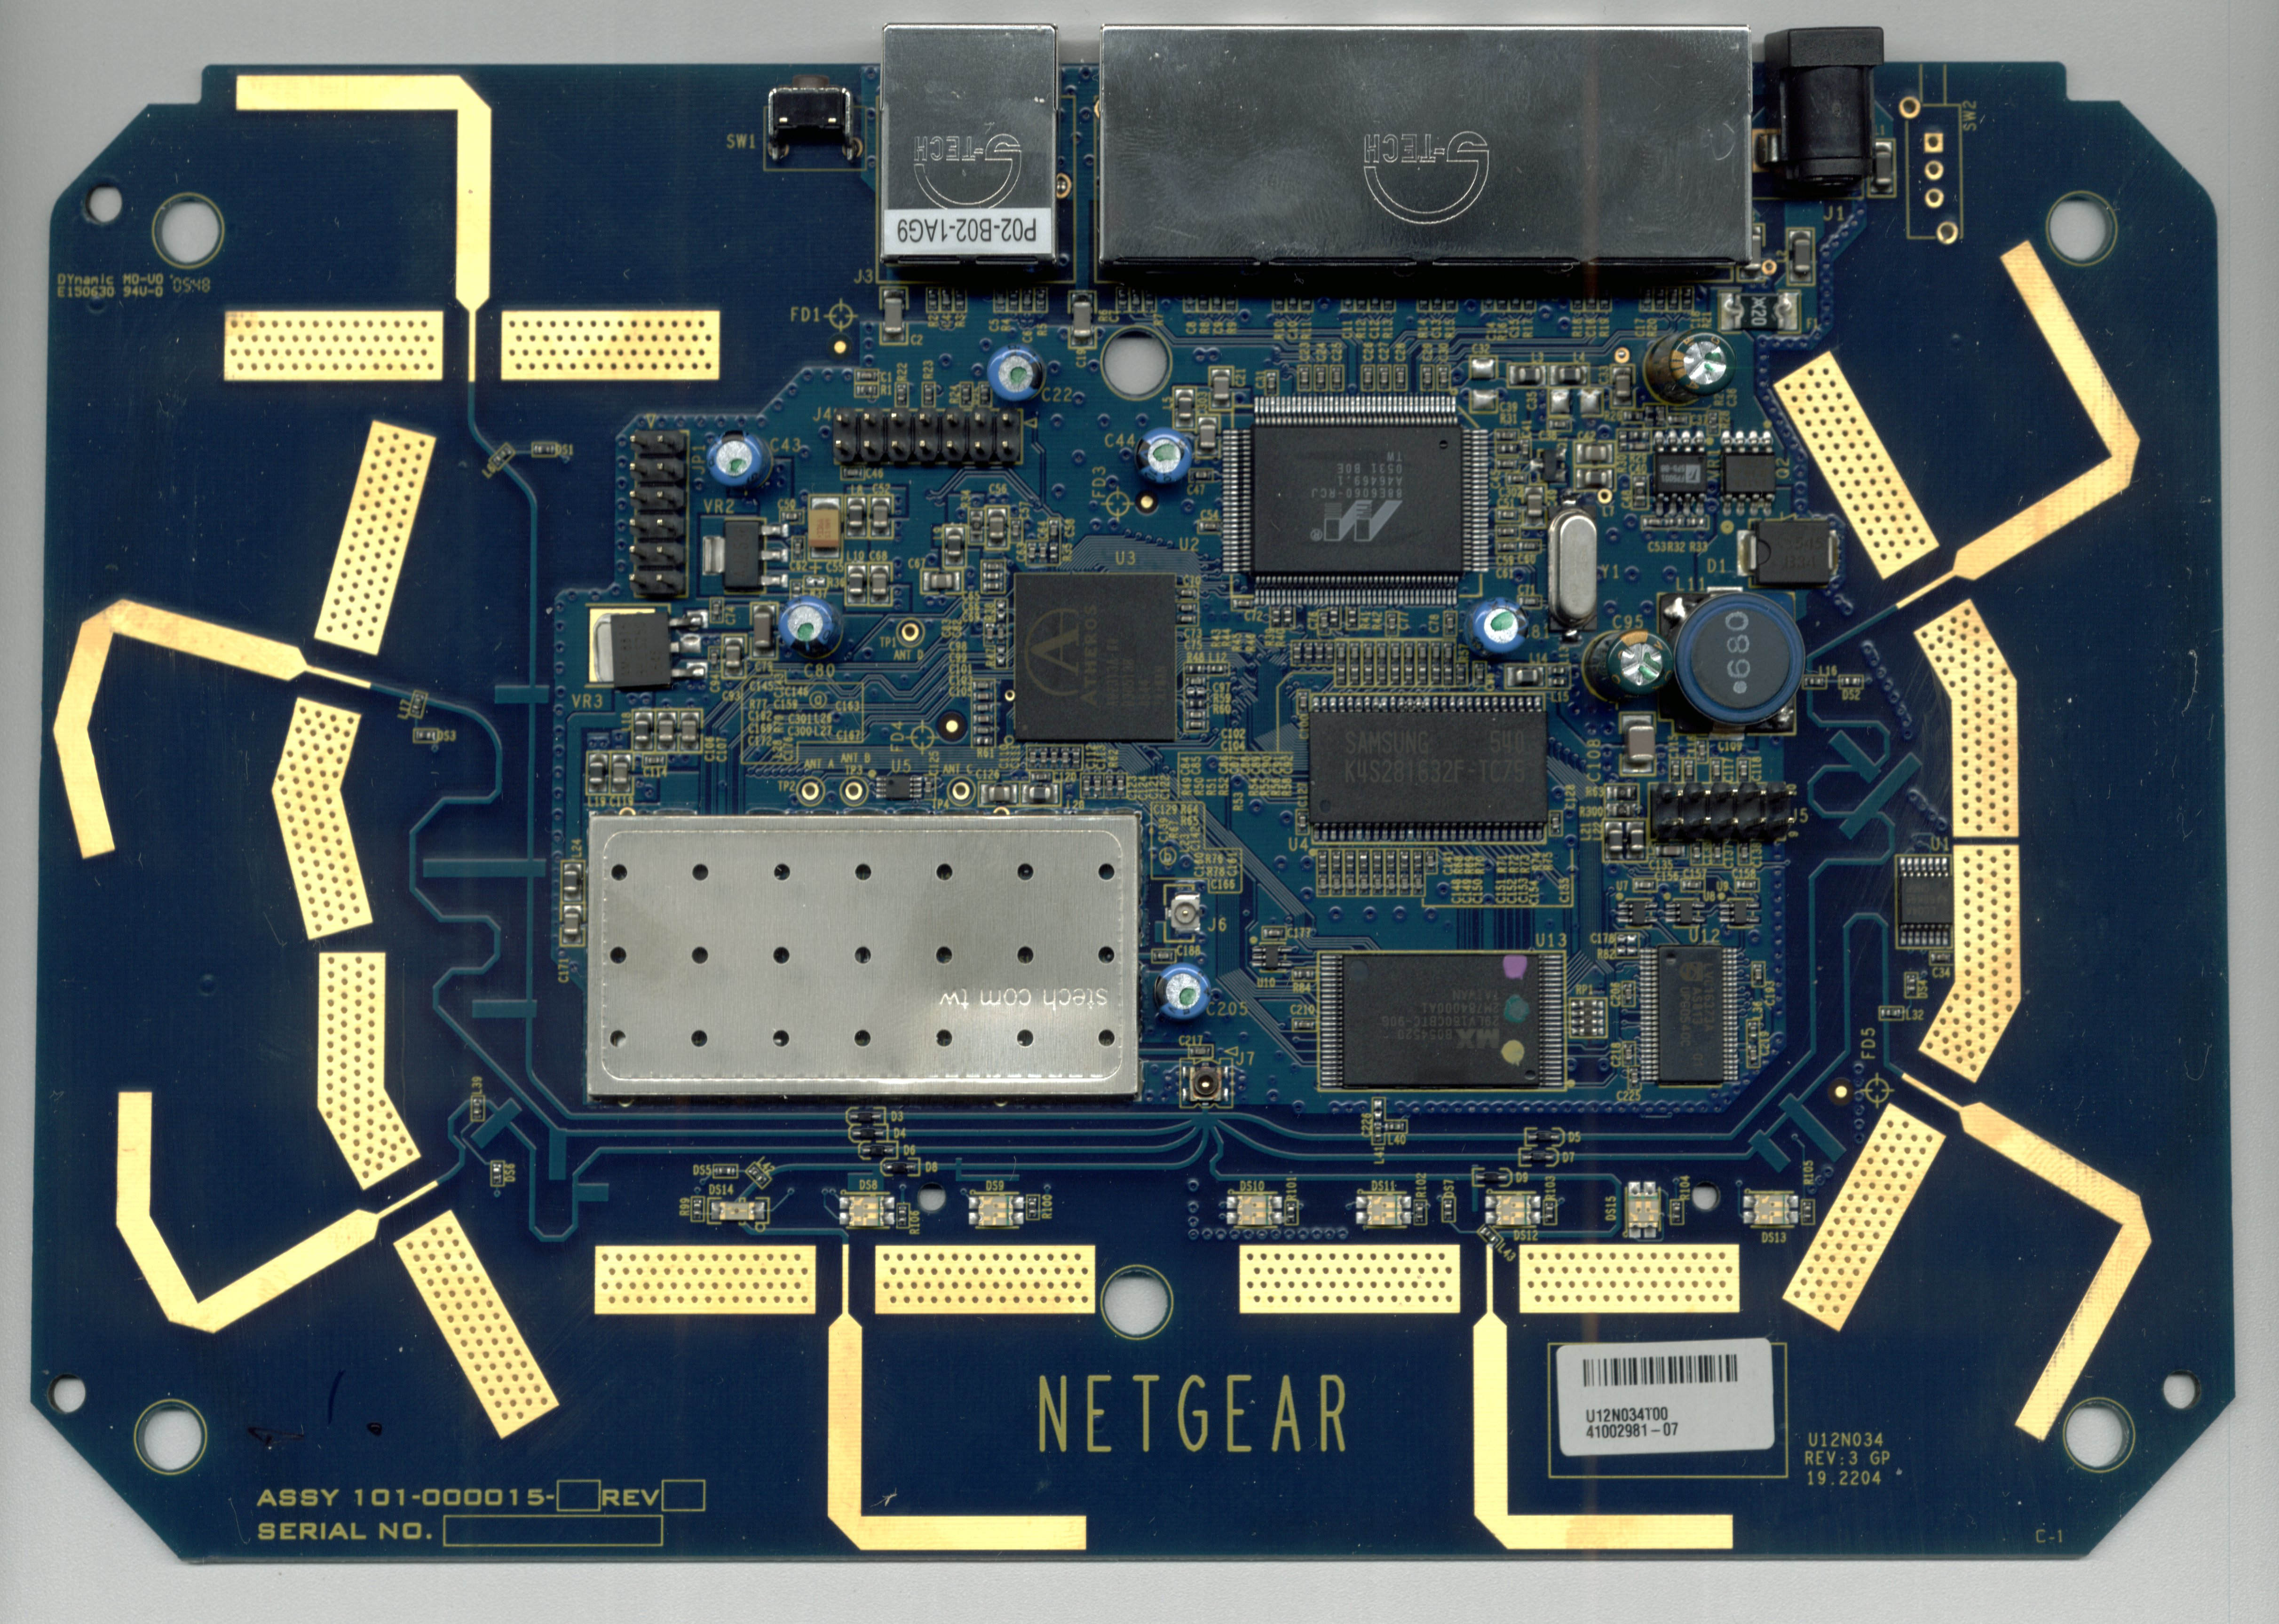 netgear_wpn824v1_board_top.jpg